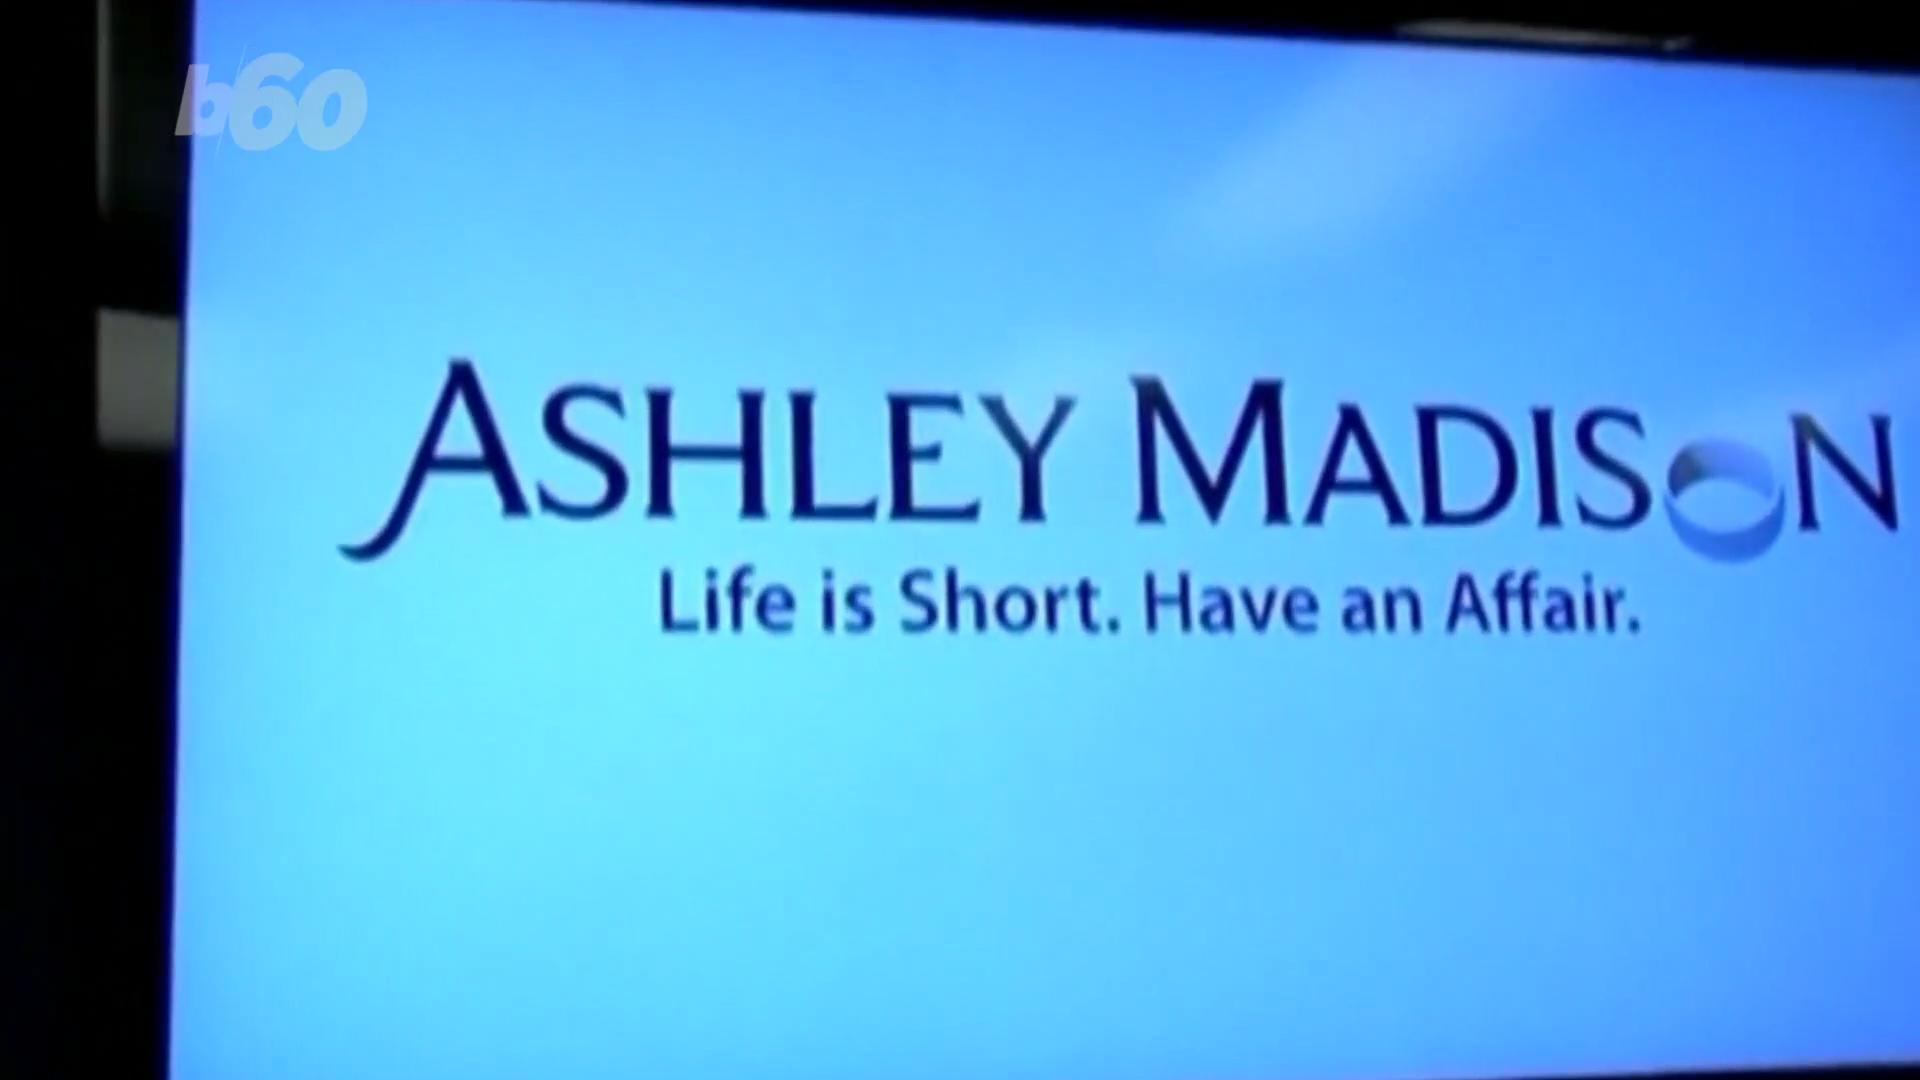 Cheating Site Ashley Madison Boasts Millions of Users Despite 2015 Hack